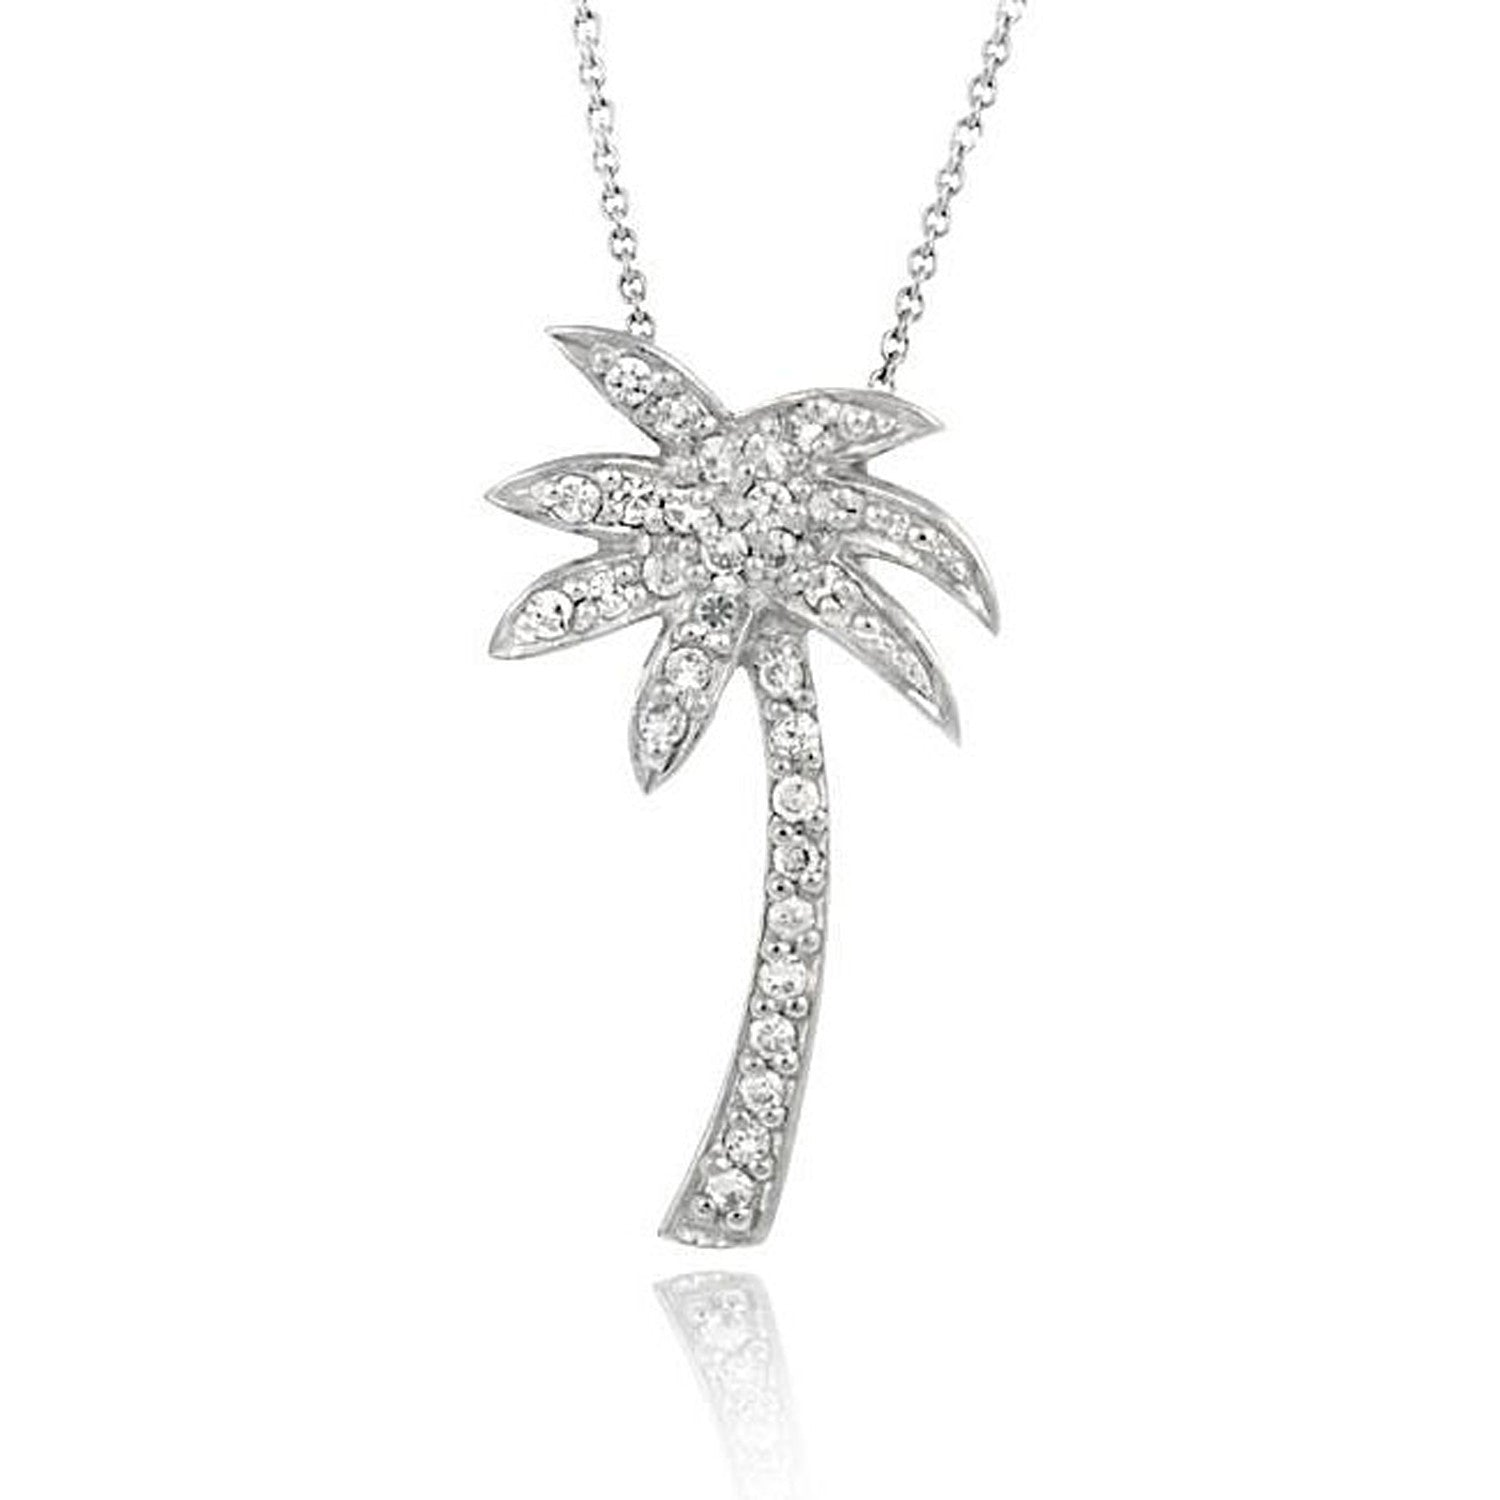 Cubic Zirconia Palm Tree Necklace in Sterling Silver